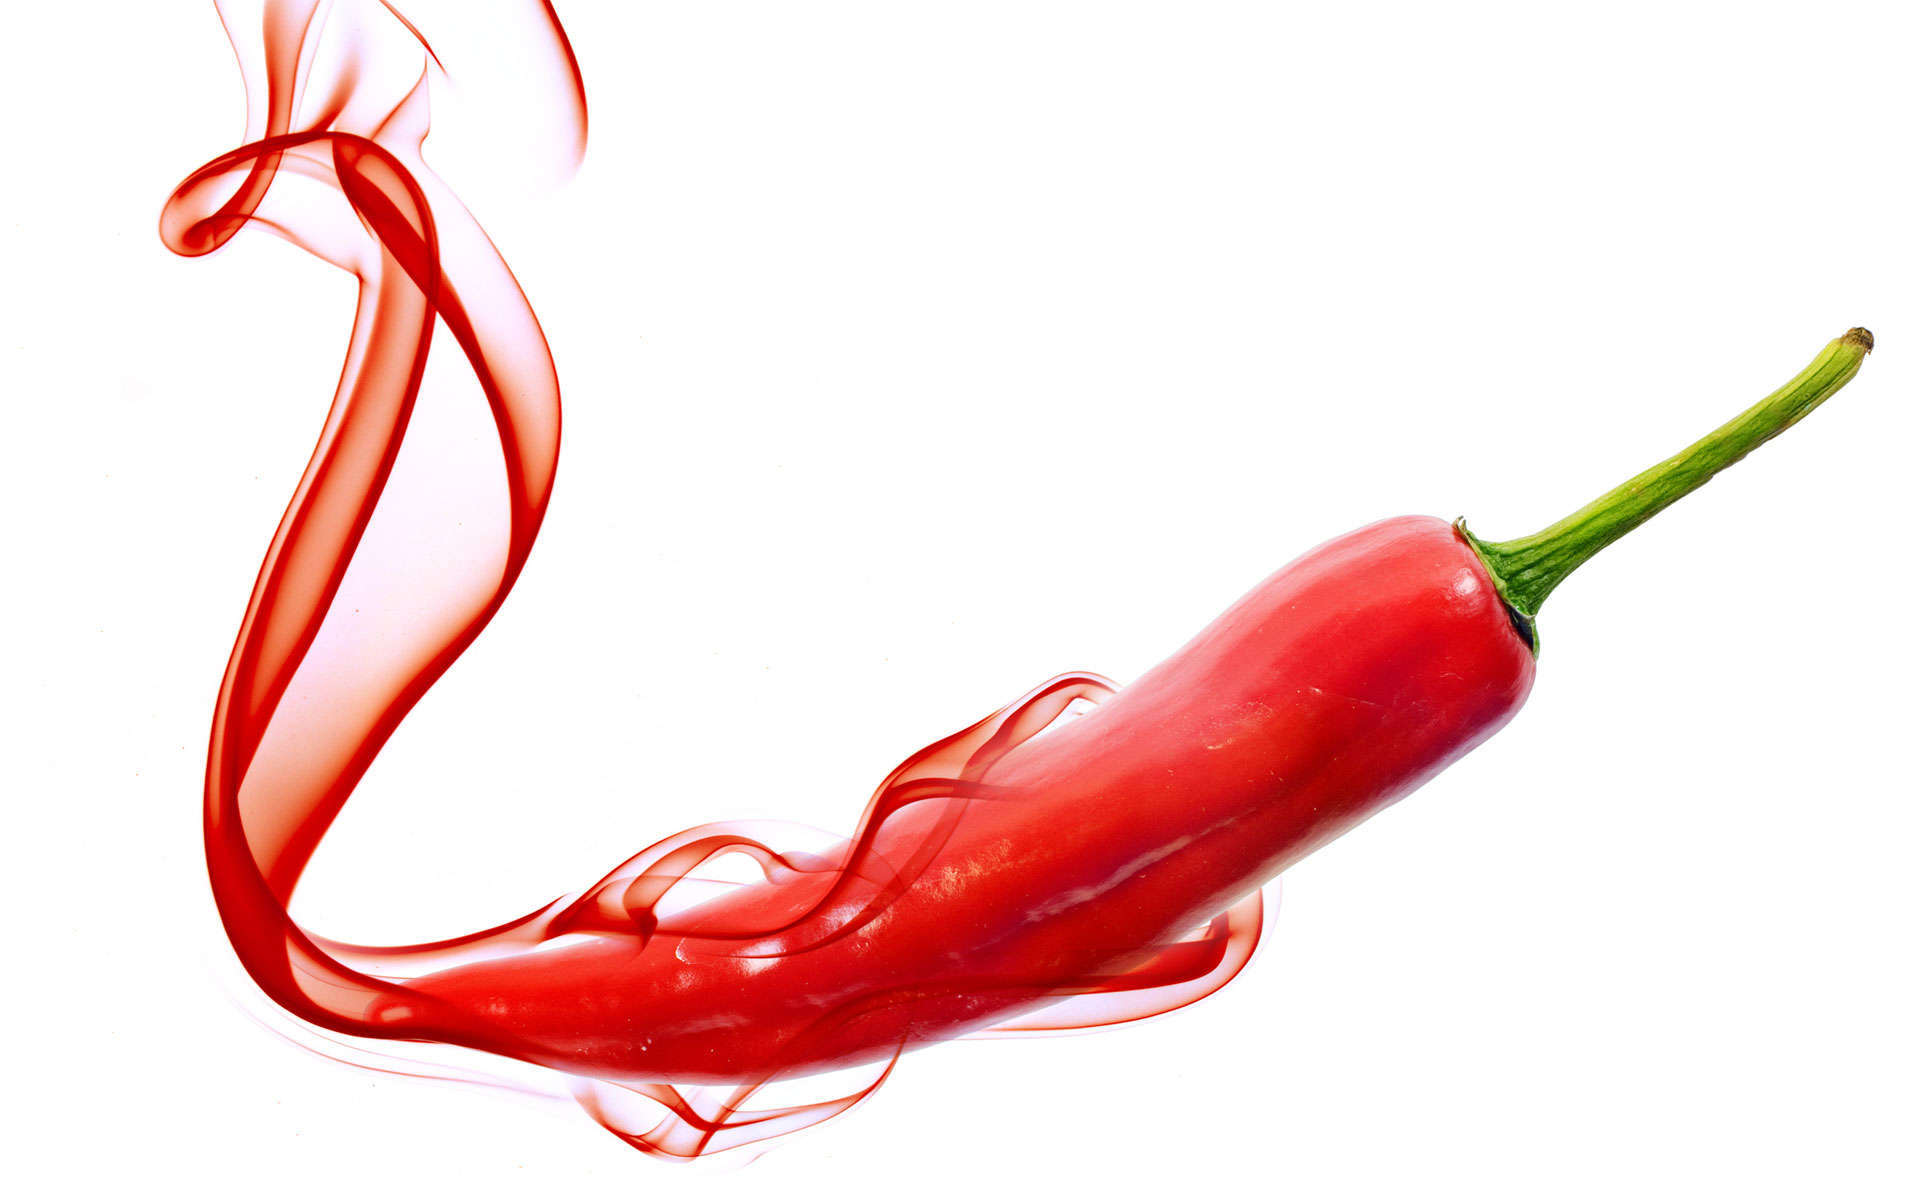 Awesome Gallery of Chili Backgrounds: 1920x1200, Judy Aiken